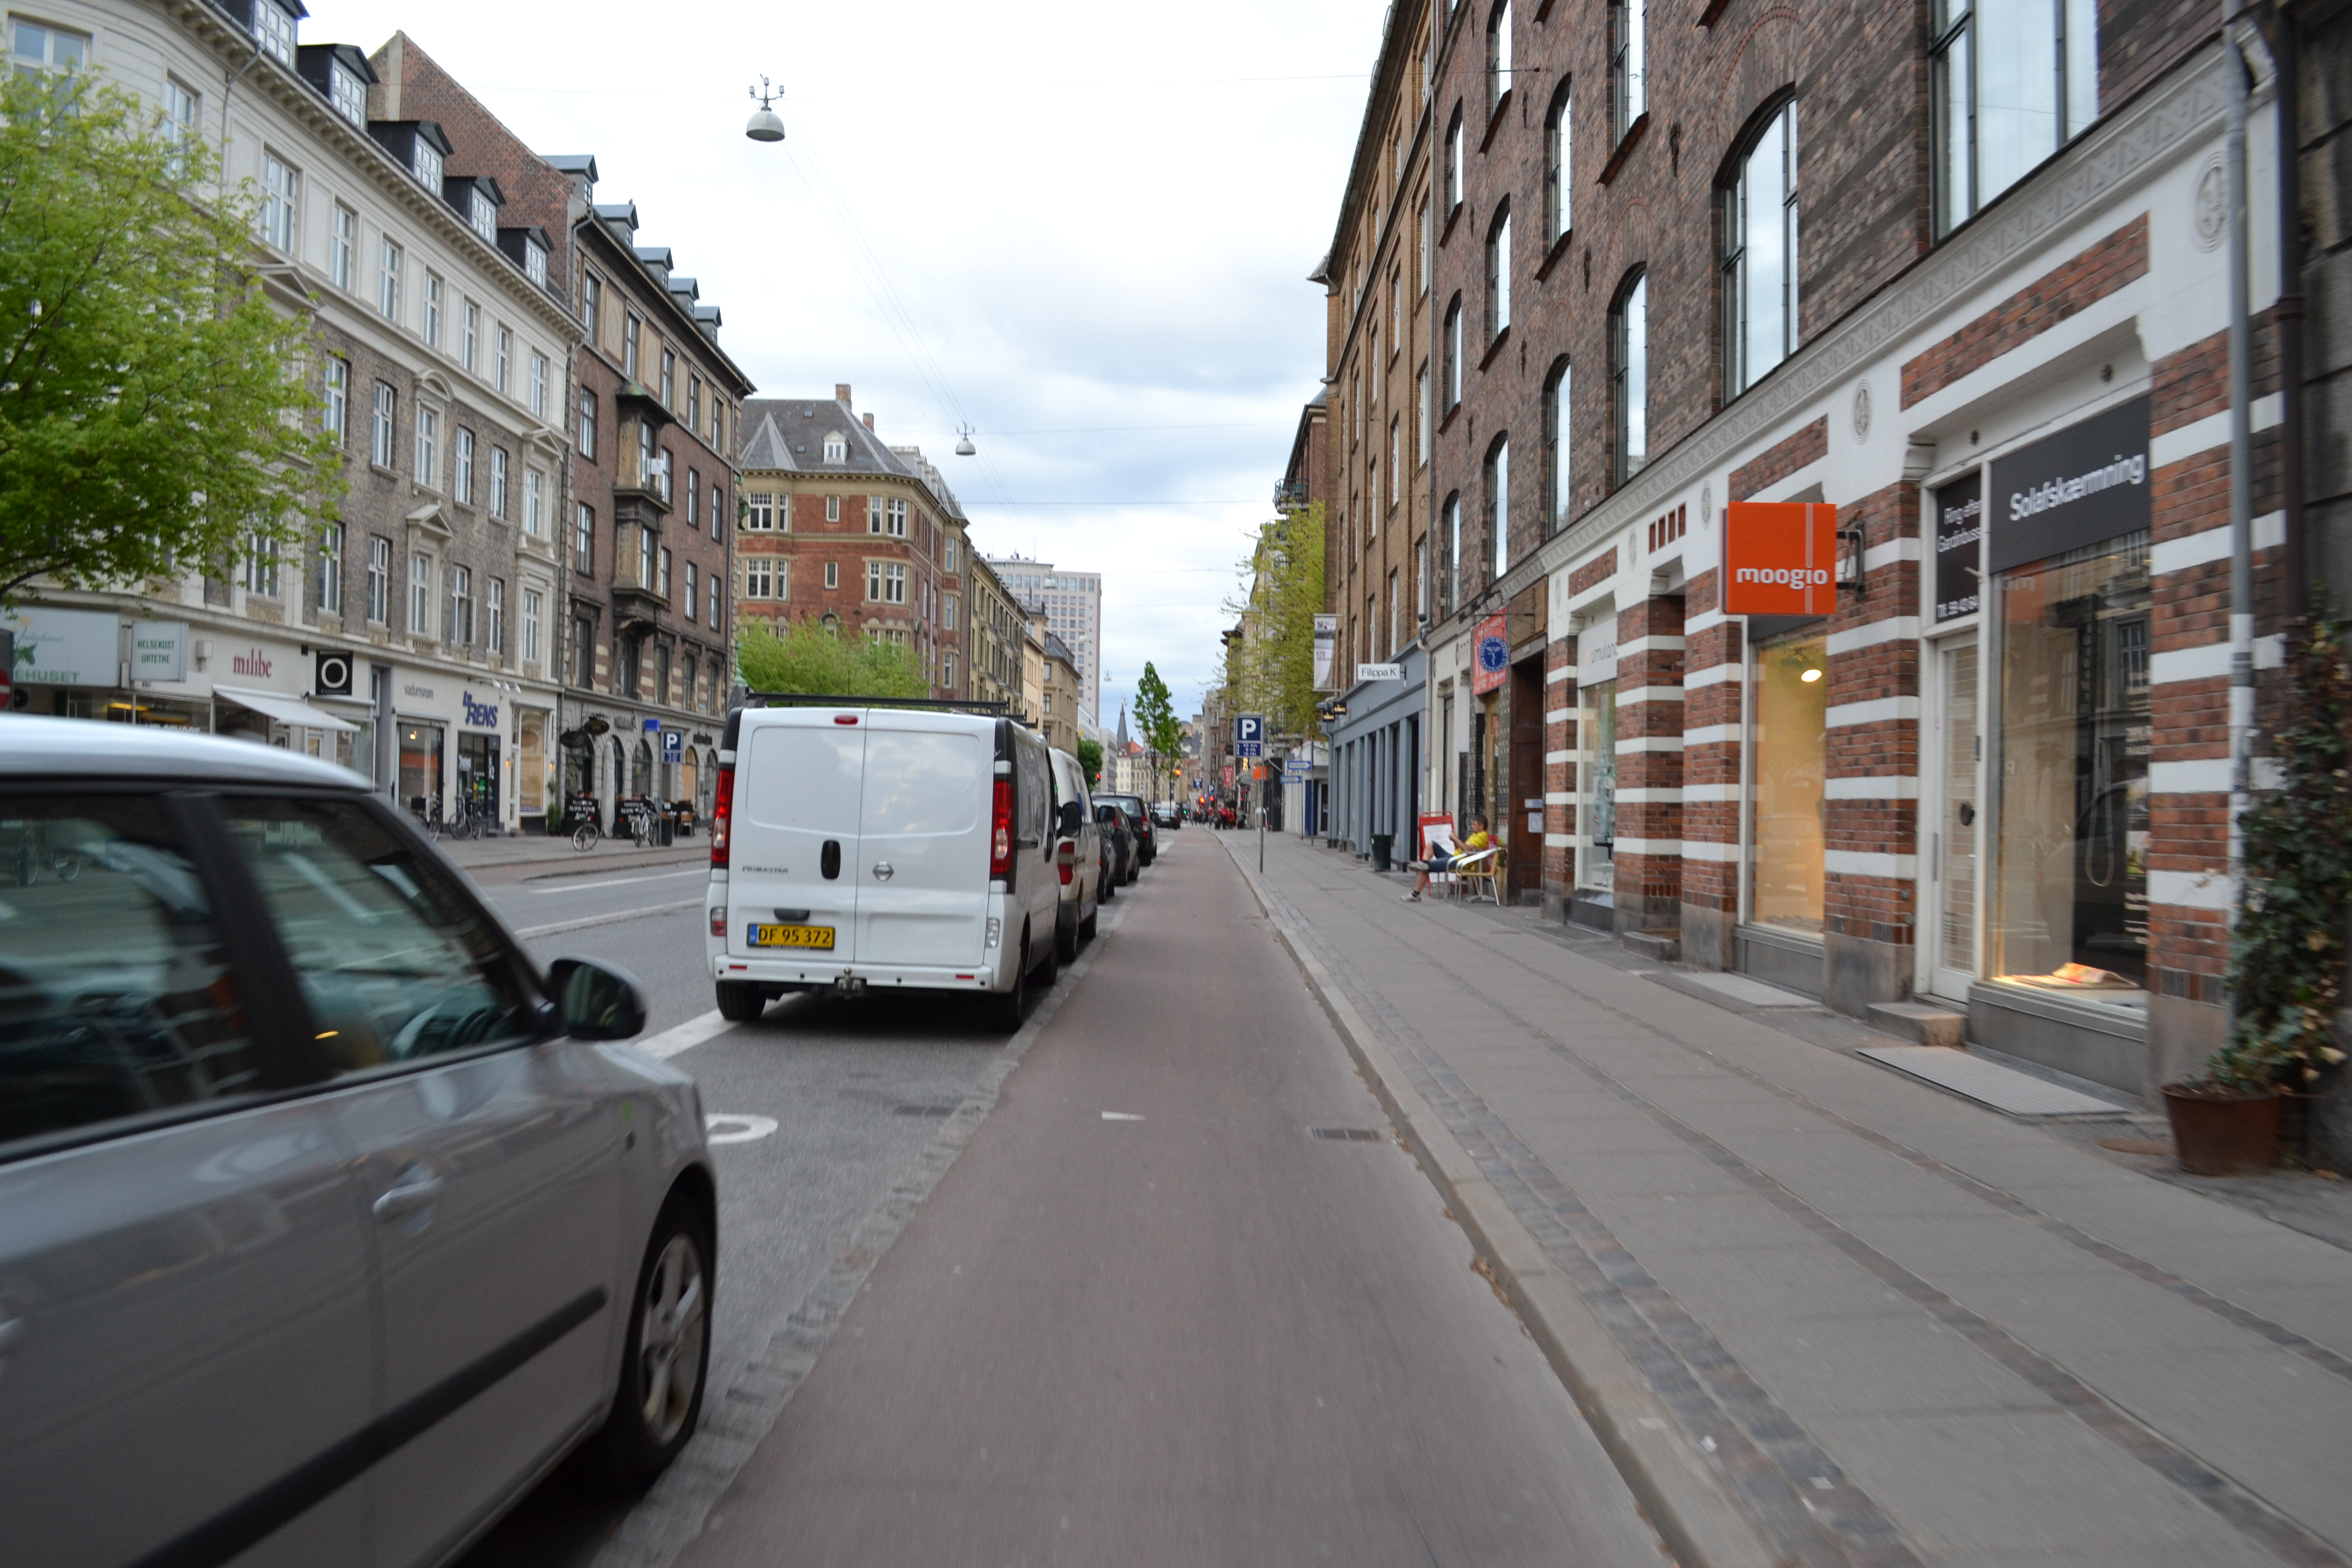 Street configuration - road, car parking, cycling path